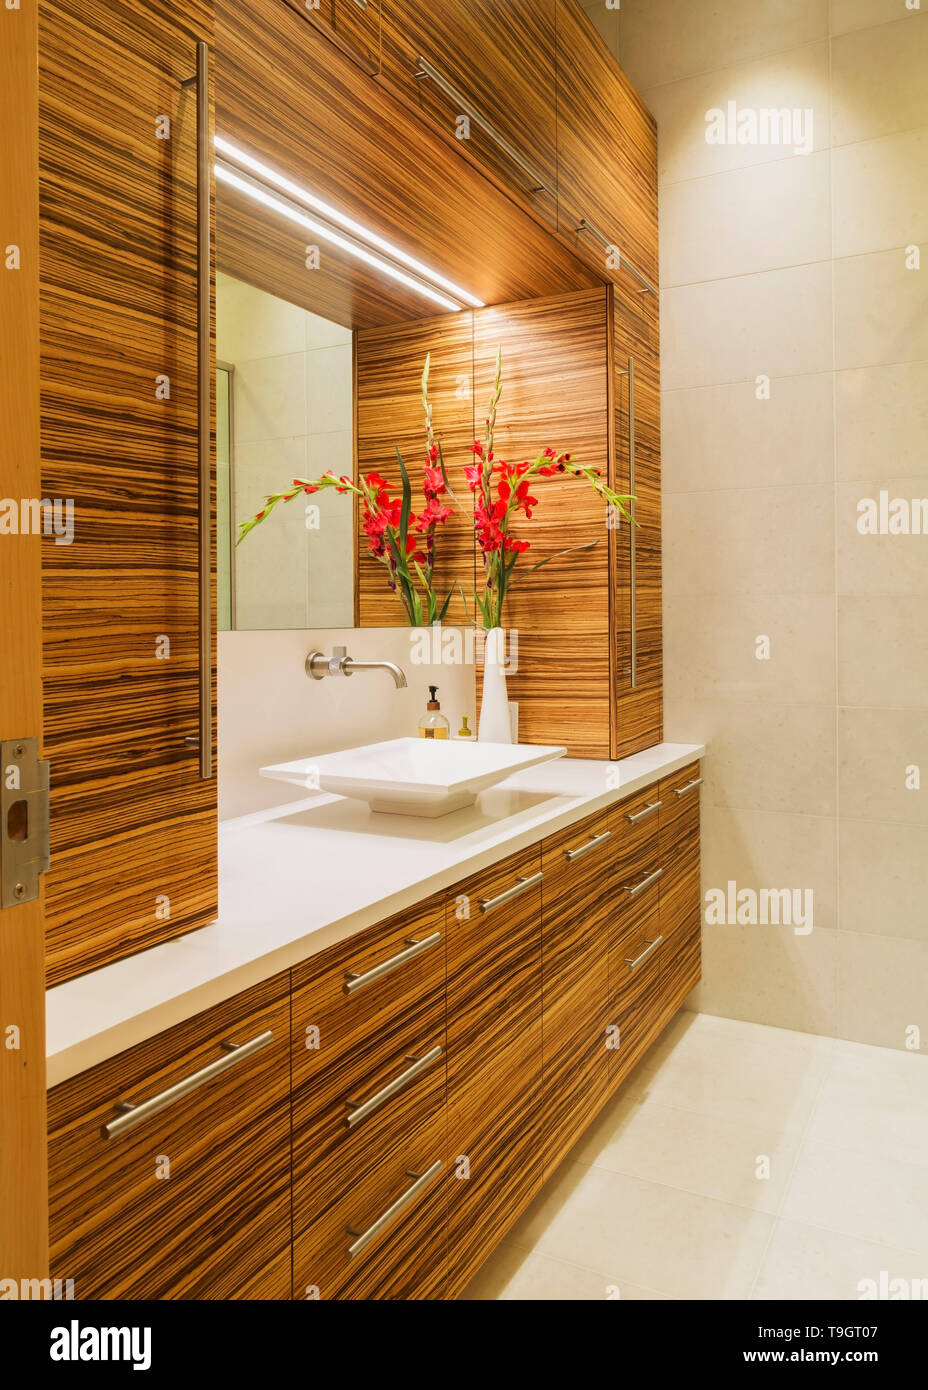 Zebra Wood Vanity With Pure White Quartz Countertop And Vessel Sink In Guest Bathroom With Marble Floor Ansd Wall Inside A Luxurious Renovated Condominium Unit In An Old 1910 Multistoried Residential Heritage